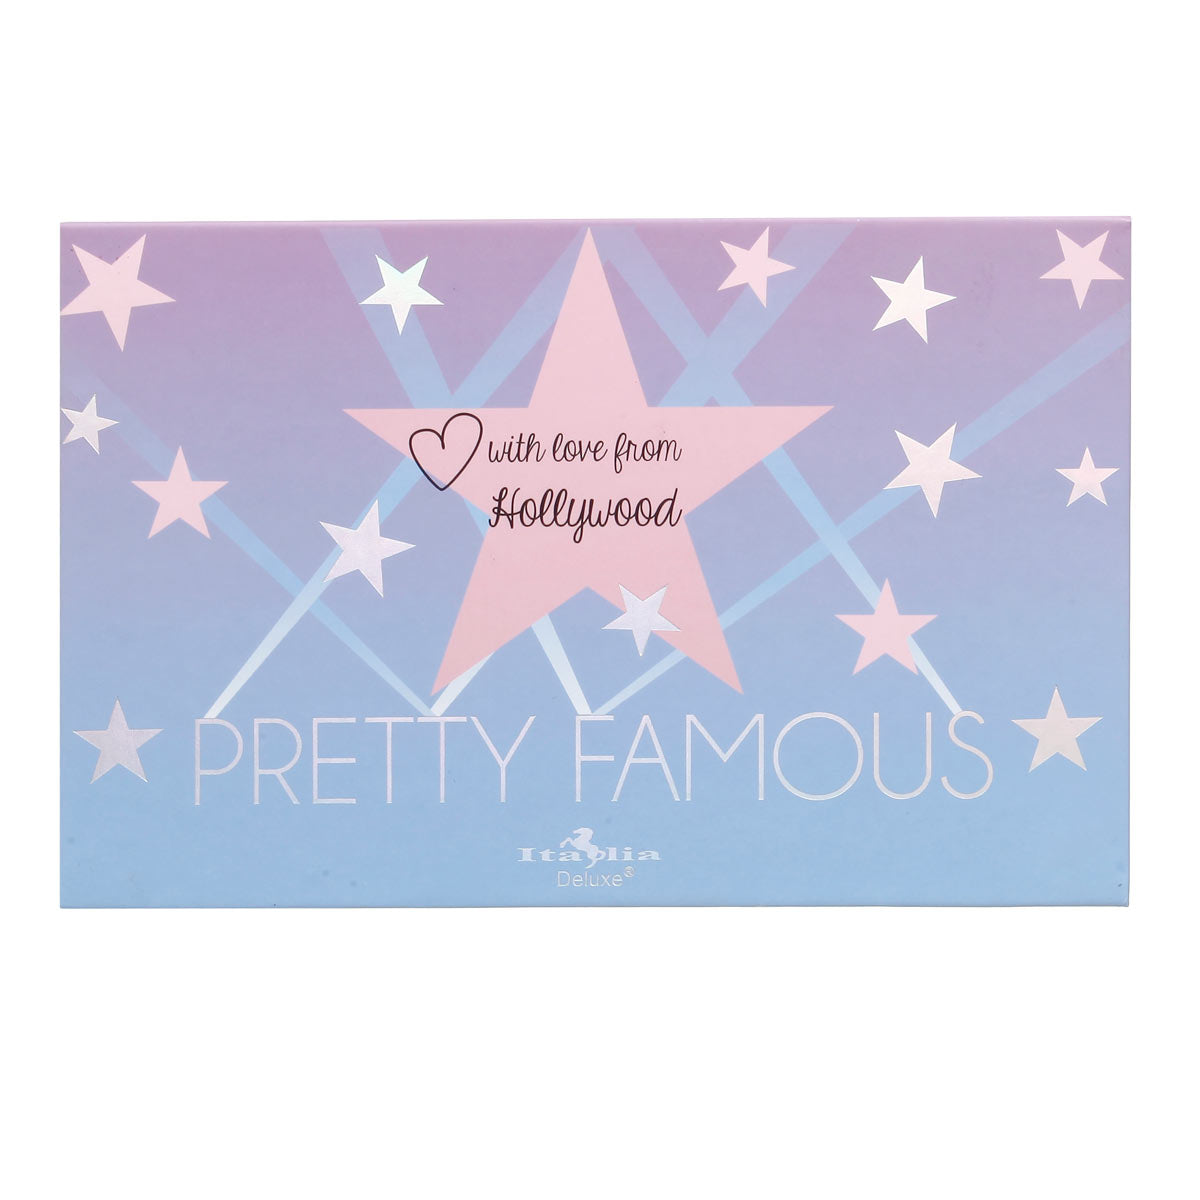 LA Beauty Palette - Pretty Famous